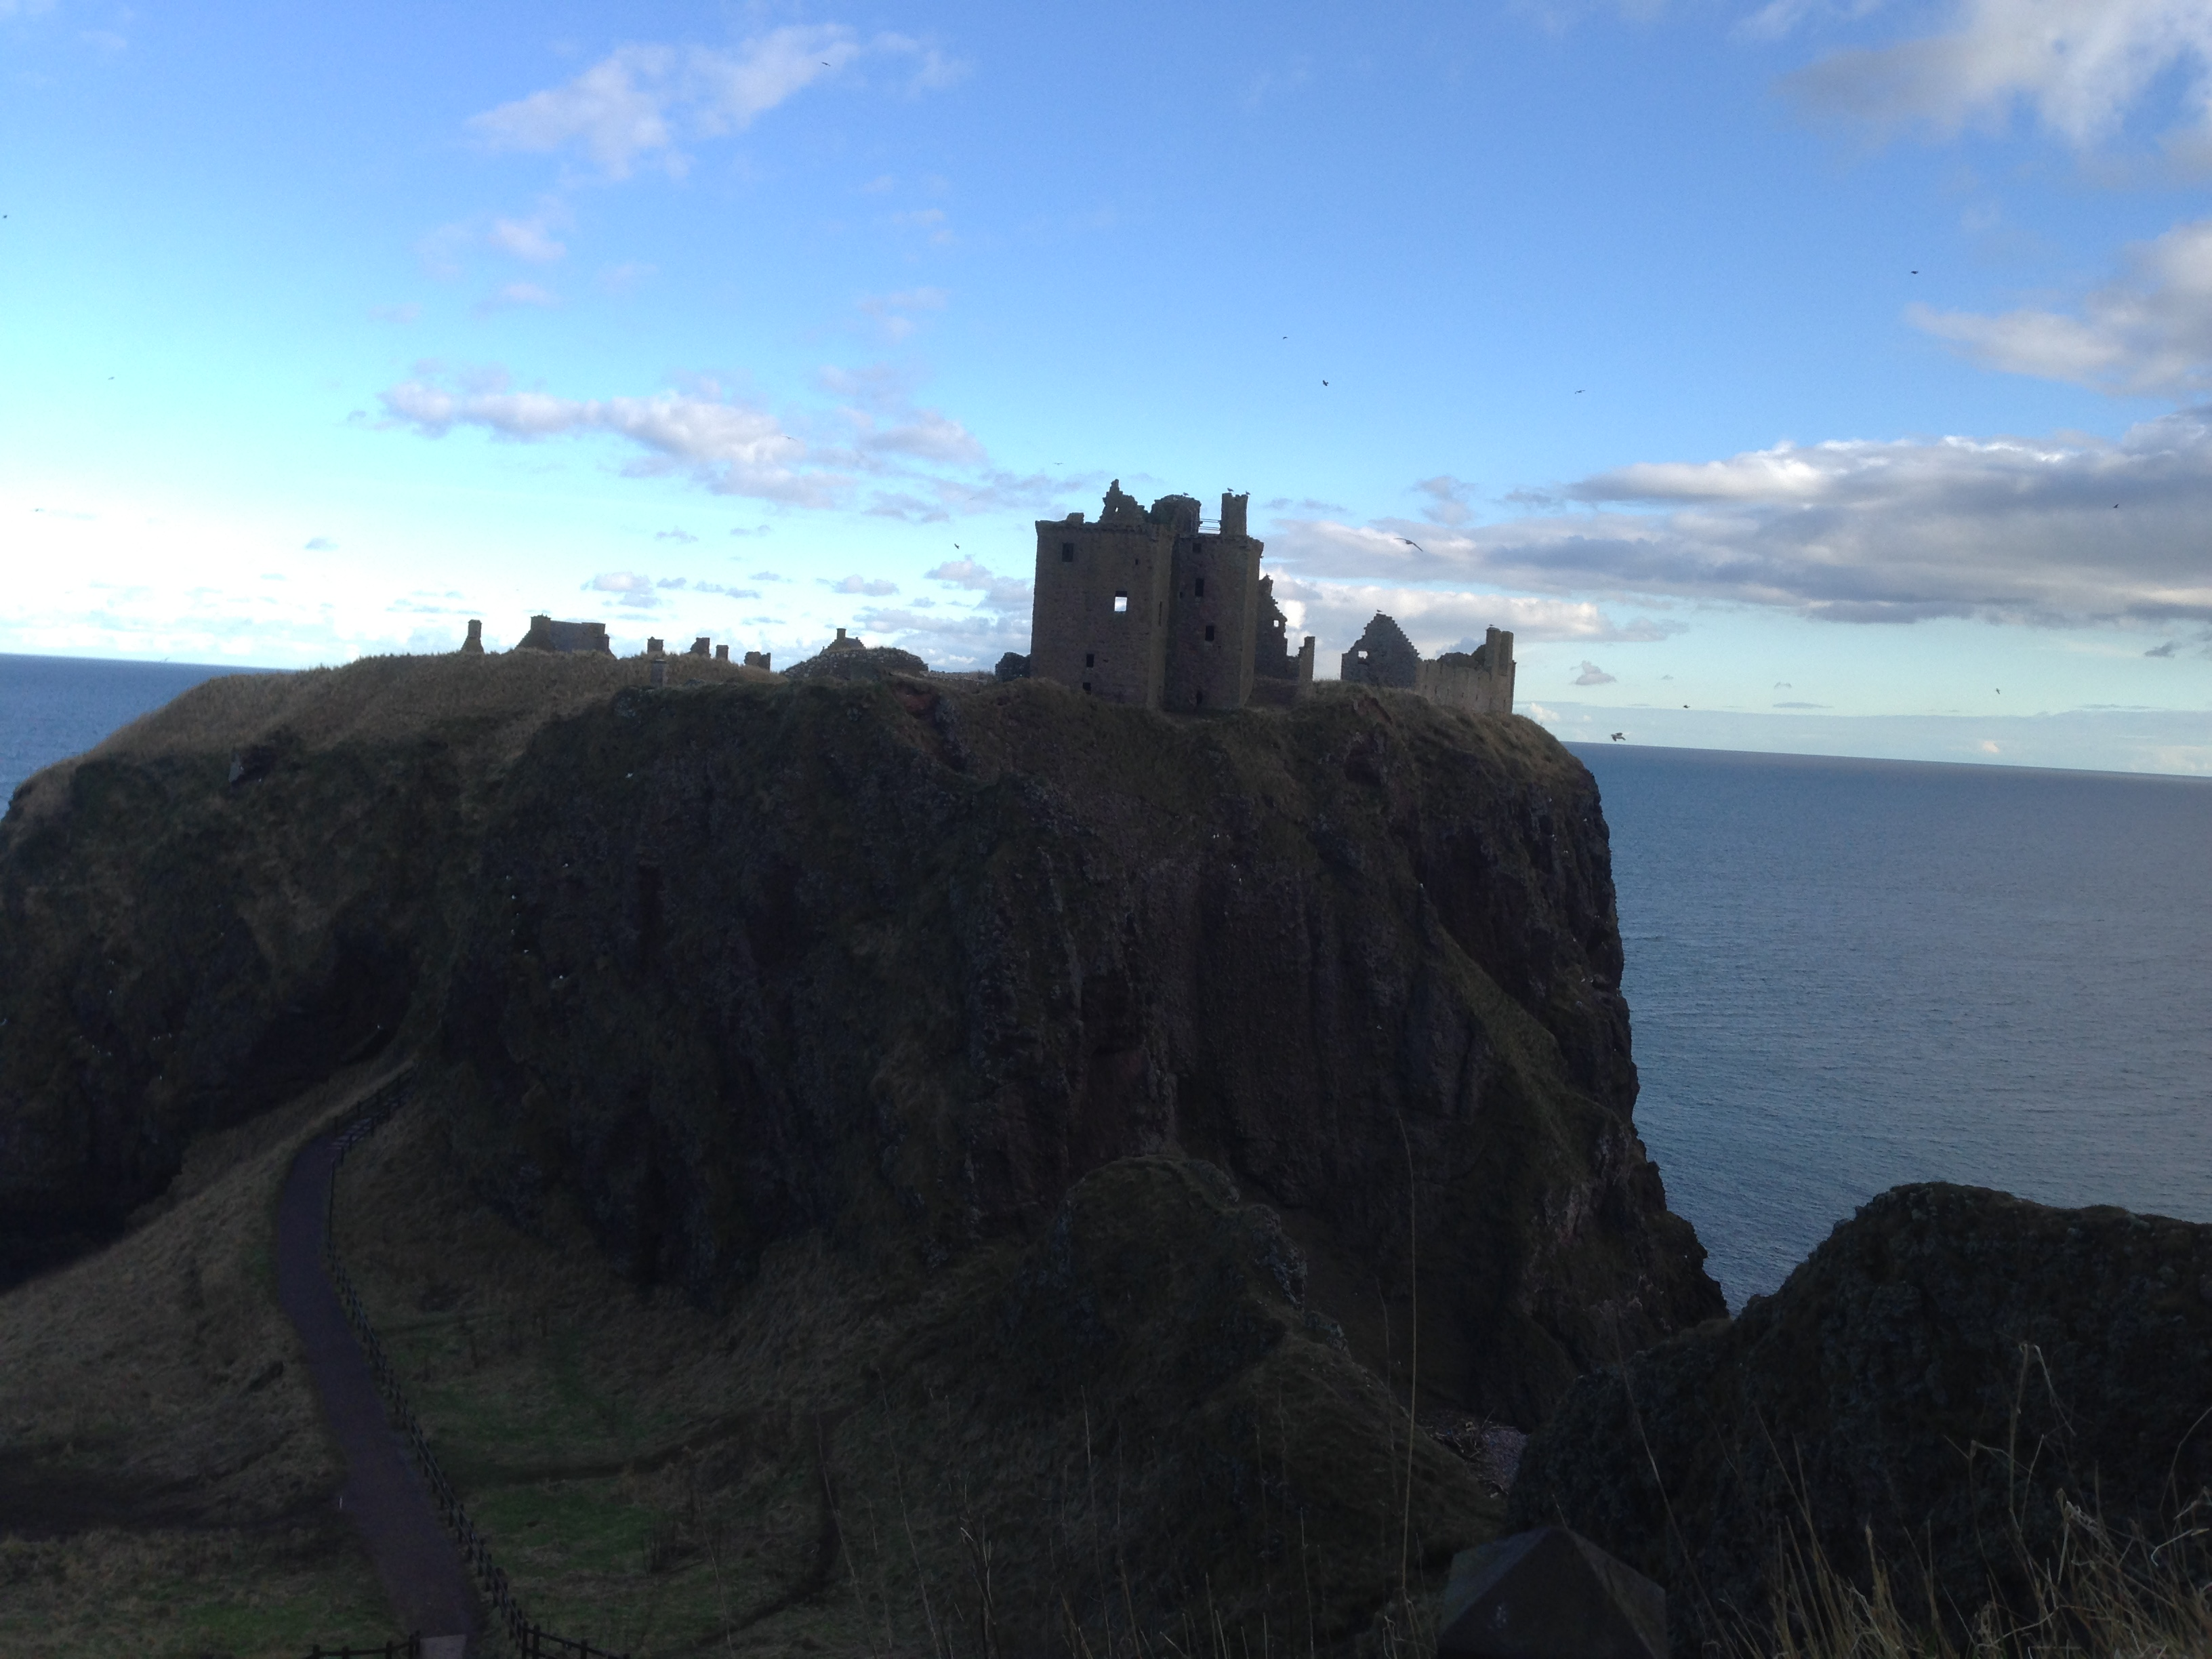 The Highland commander - Dunnottar Castle